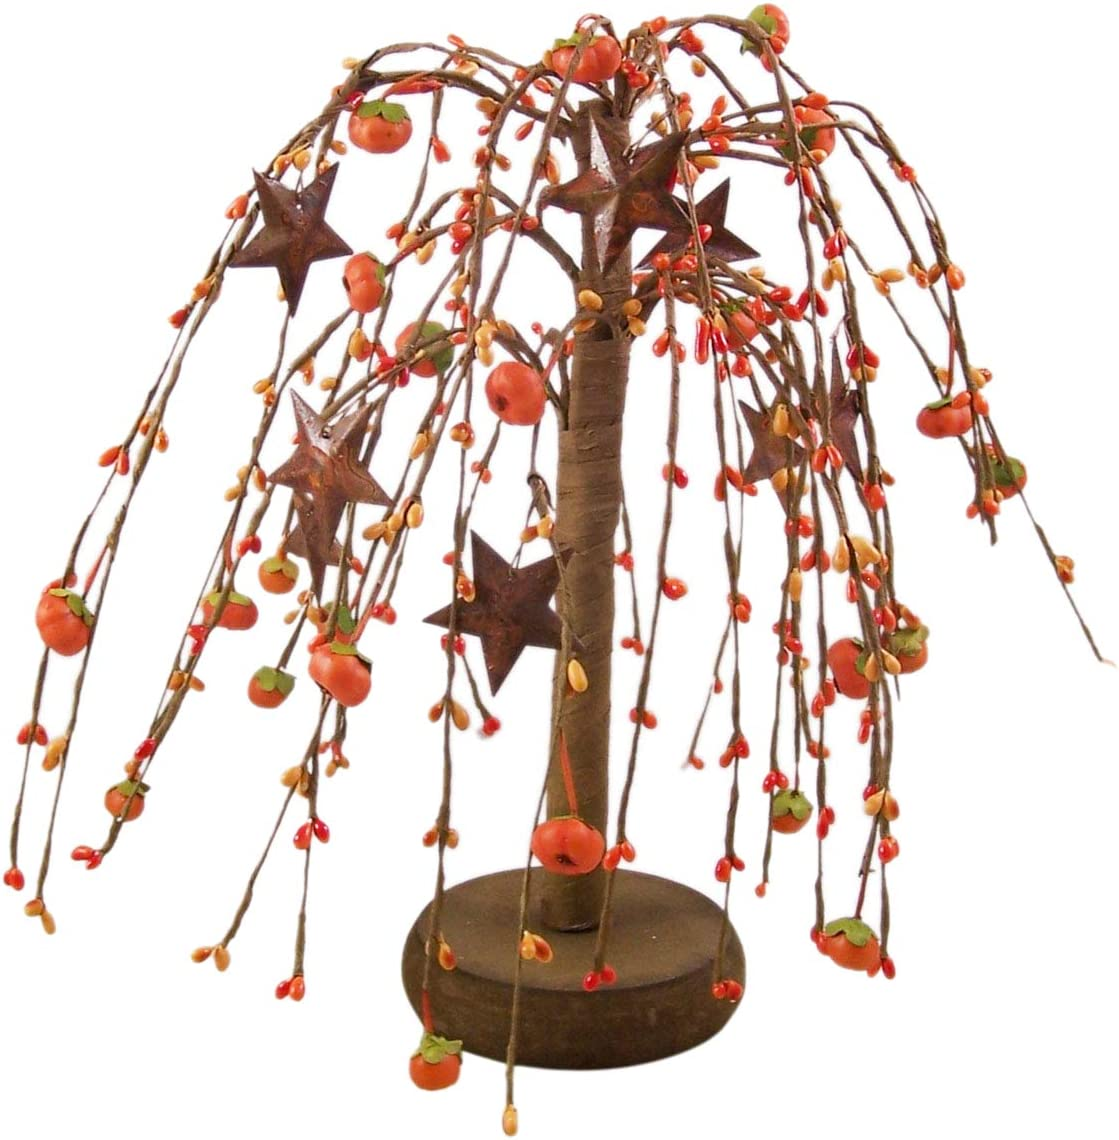 Needzo Fall Tree Decorations, Rustic Pumpkin and Star Tree, Autumn Harvest Table Decor for Home, 18 Inch